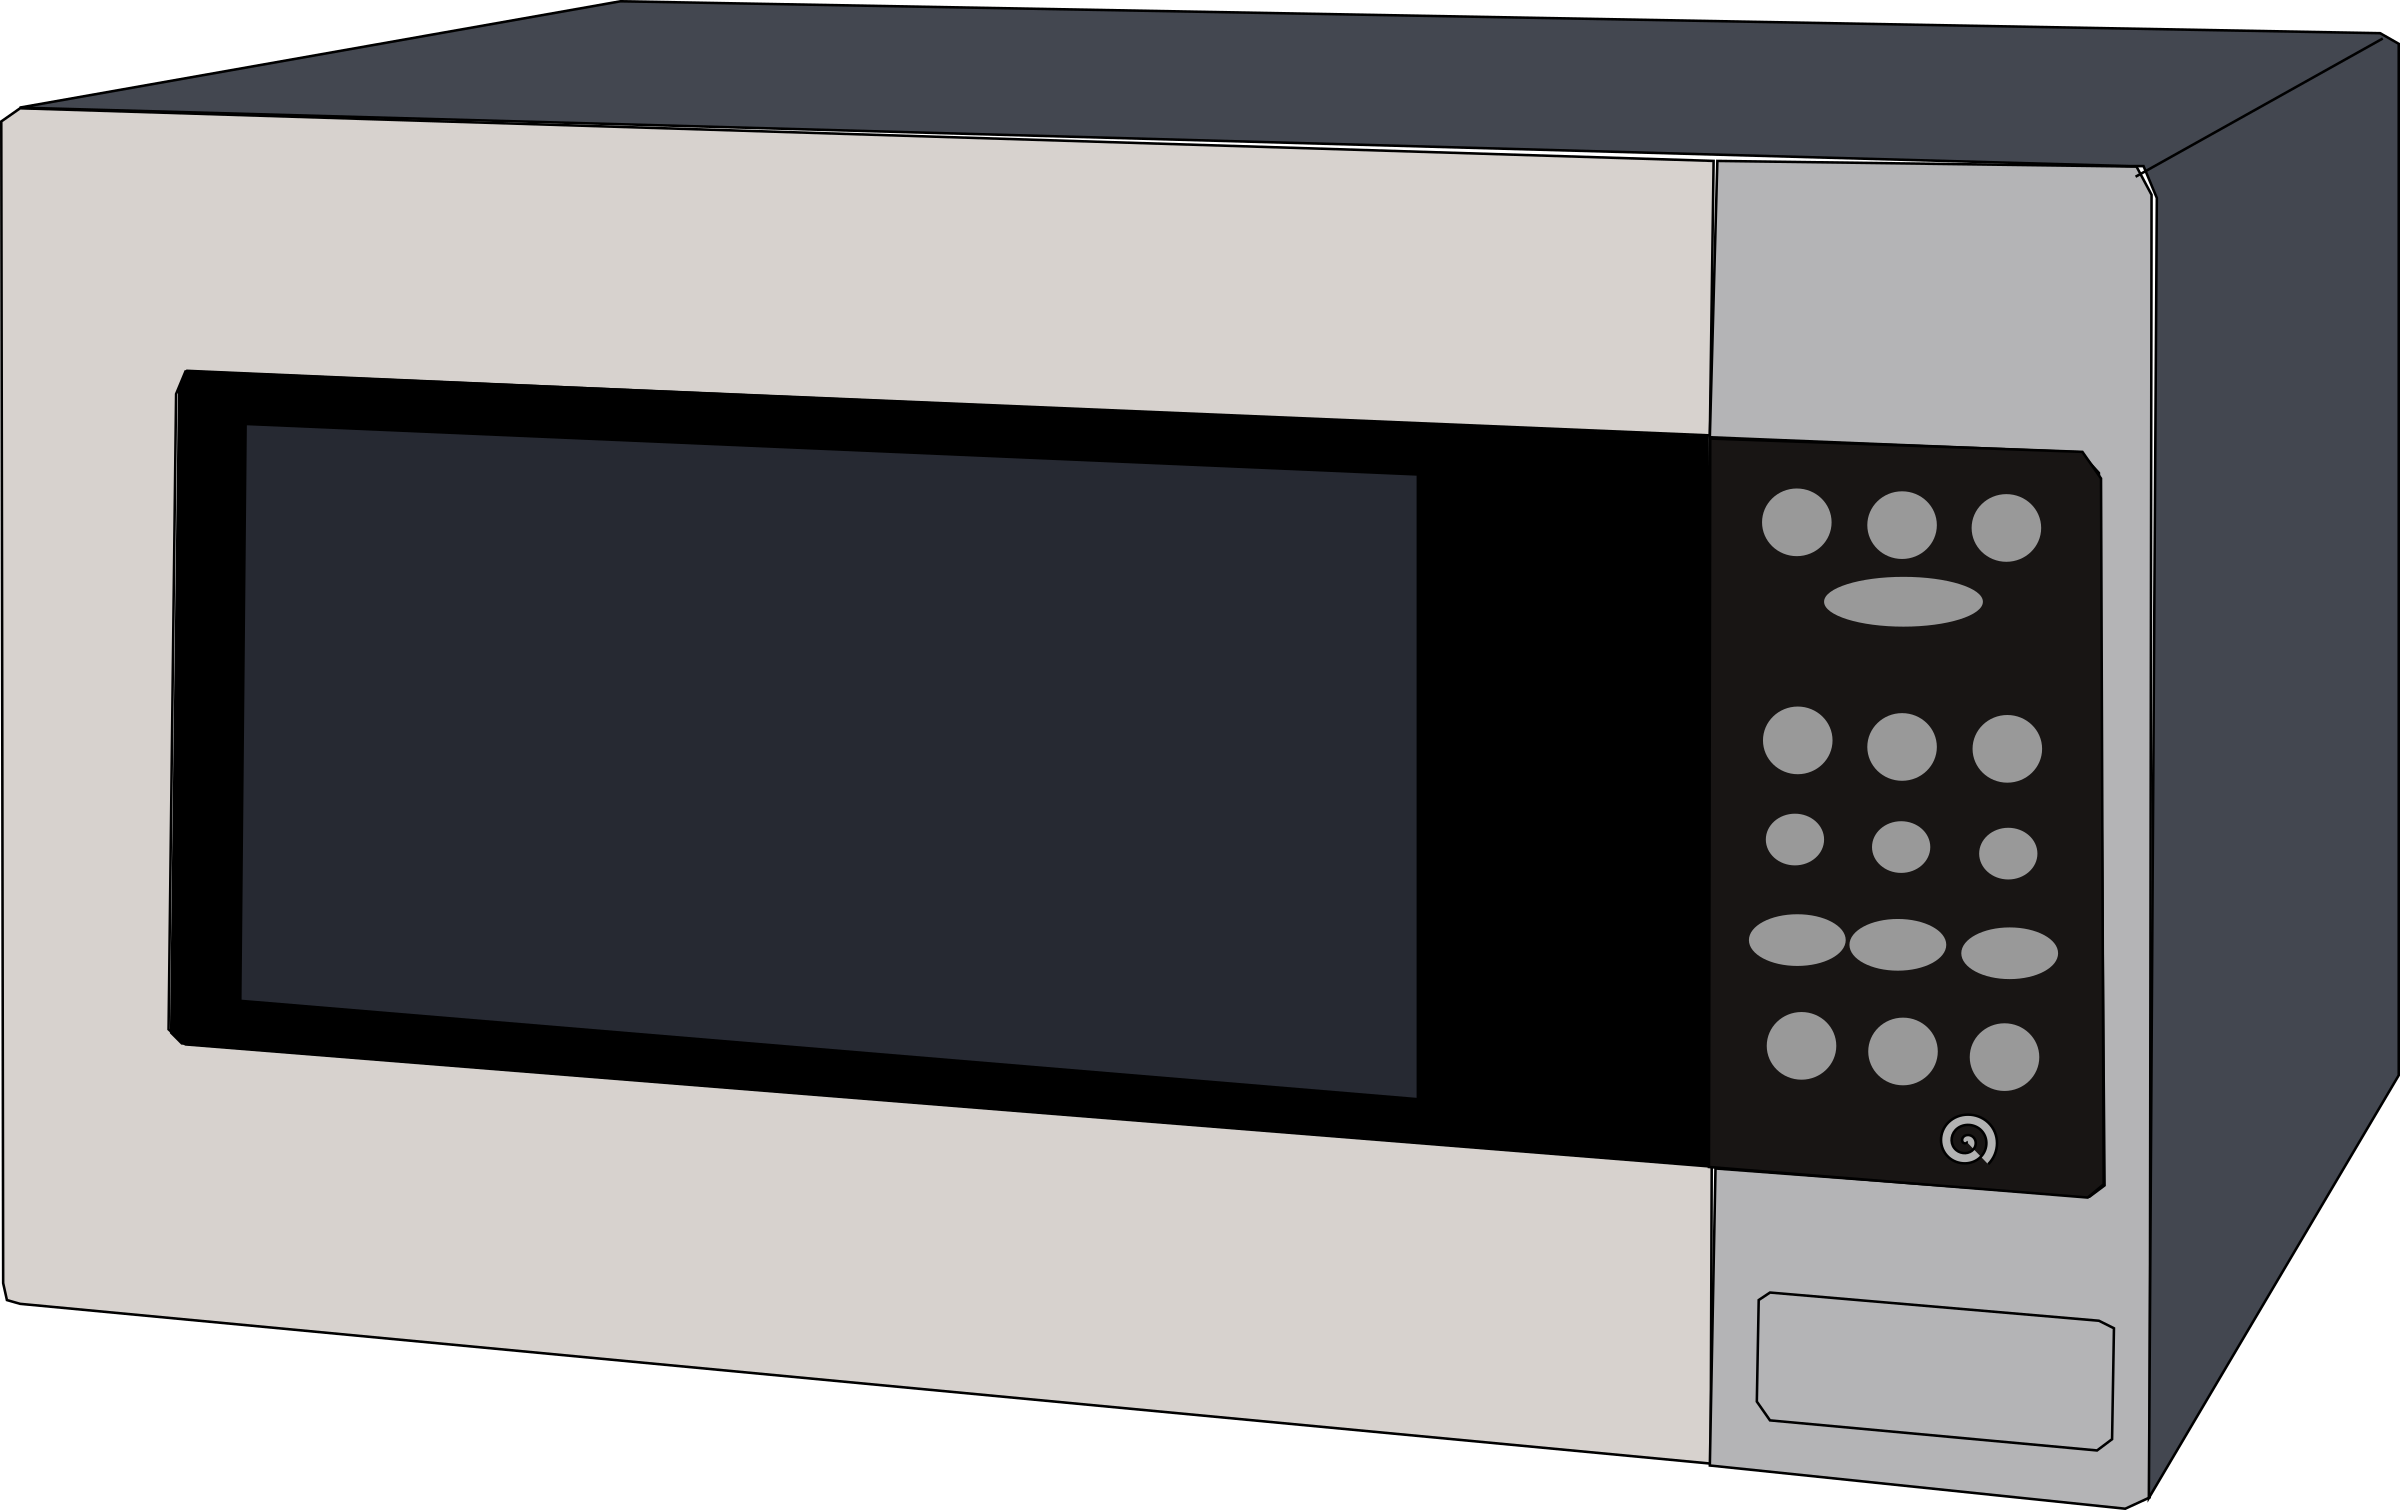 Microwave oven by Machovka